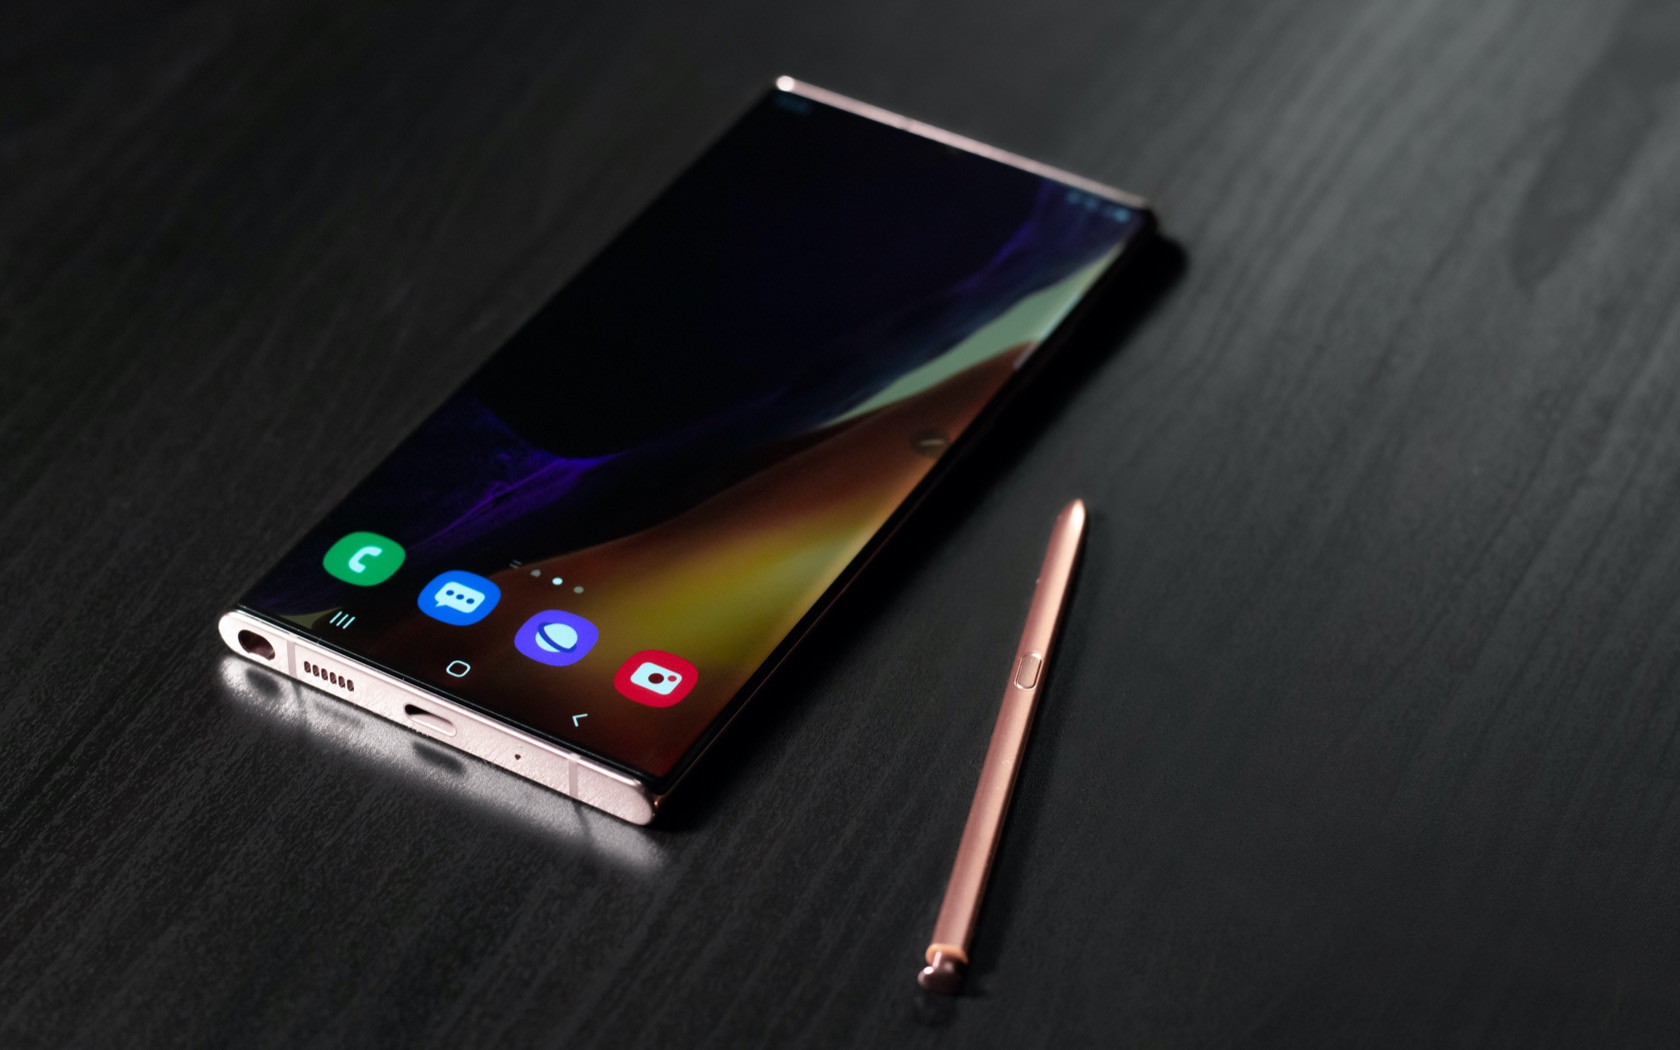 The Samsung Galaxy Note 20 Ultra And Note 20 Are More Than Just The S Pen Slashgear